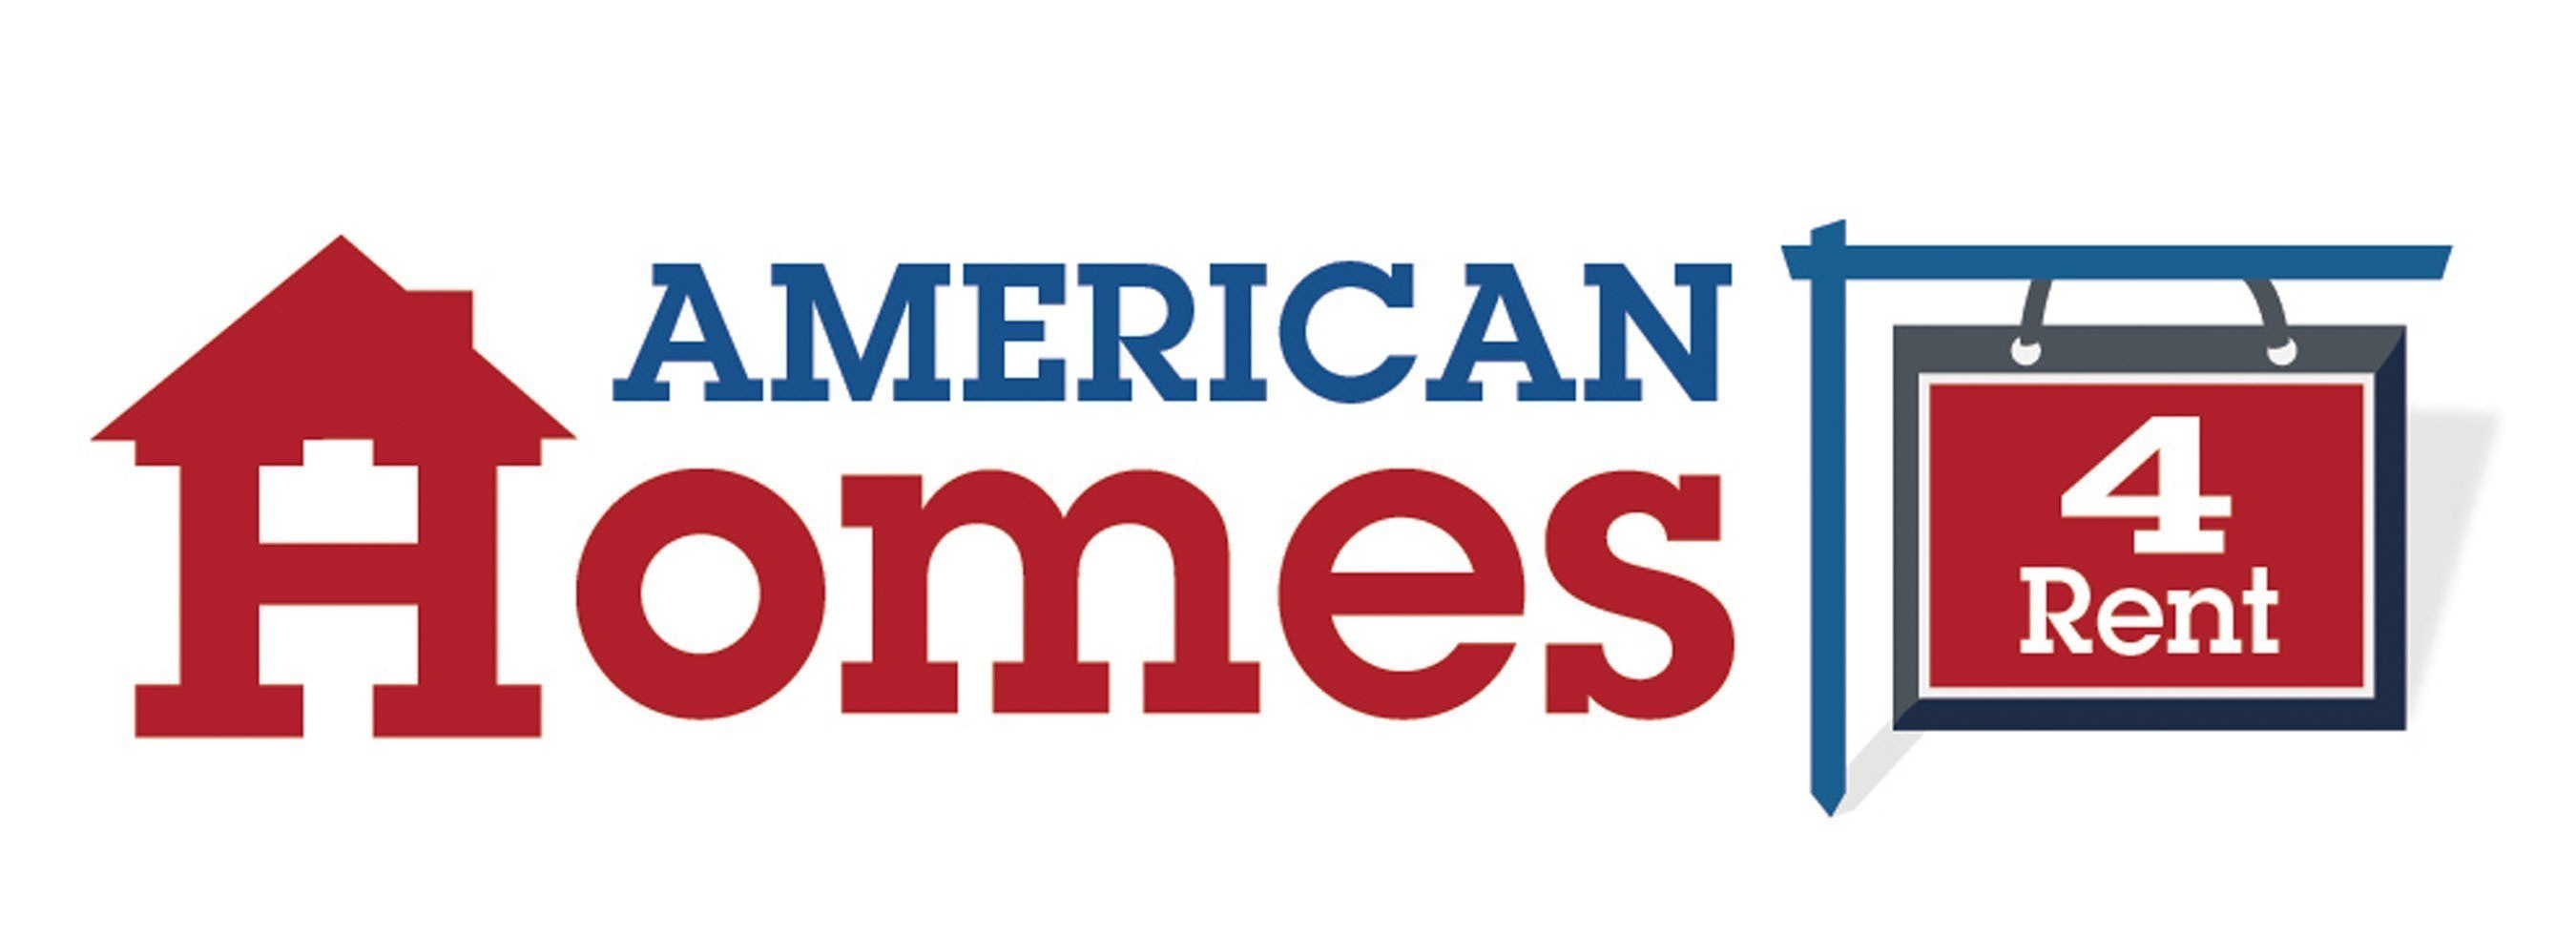 Is American Homes  Rent A Good Company